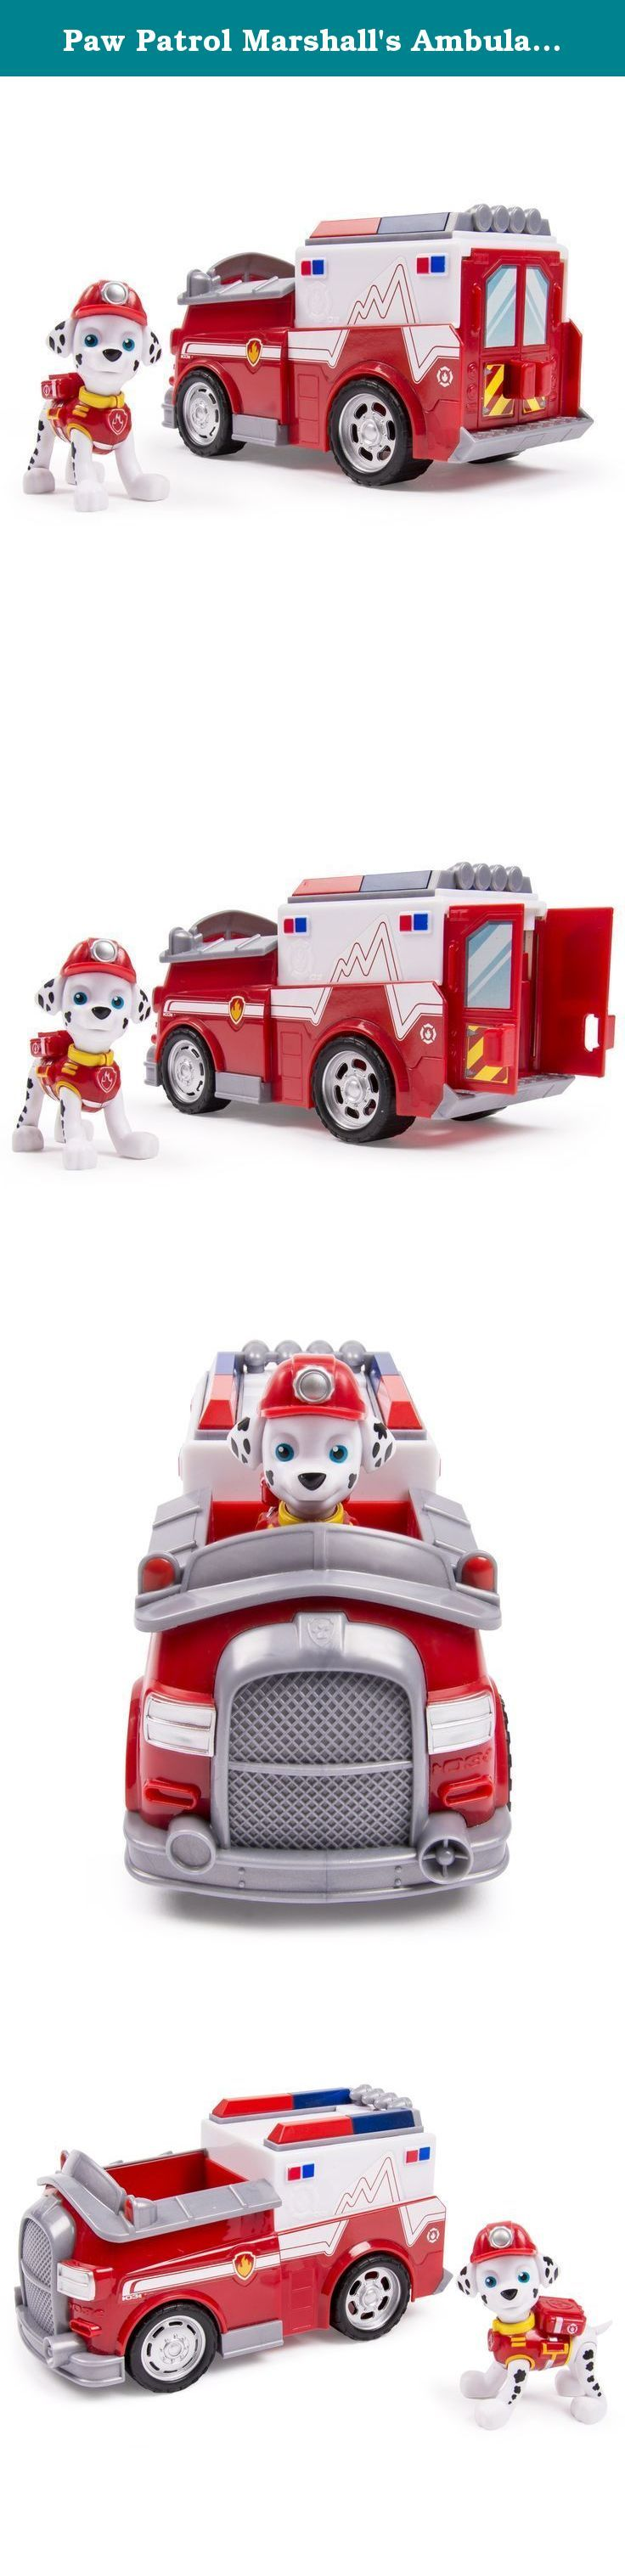 Paw Patrol Marshall's Ambulance, Vehicle and Figure (works with Paw Patroller). No job is too big and no pup is too small! Now you can reenact new rescue scenes with EMT Marshall and his new EMT Ambulance! All of your favorite Paw Patrol characters are ready to save the day. Race to the ruff-ruff rescue with EMT Marshall! Together, your child's imagination will be lit up with pup inspired rescue missions full of friendship, teamwork and bravery. With EMT Marshall Pup and EMT Ambulance you...